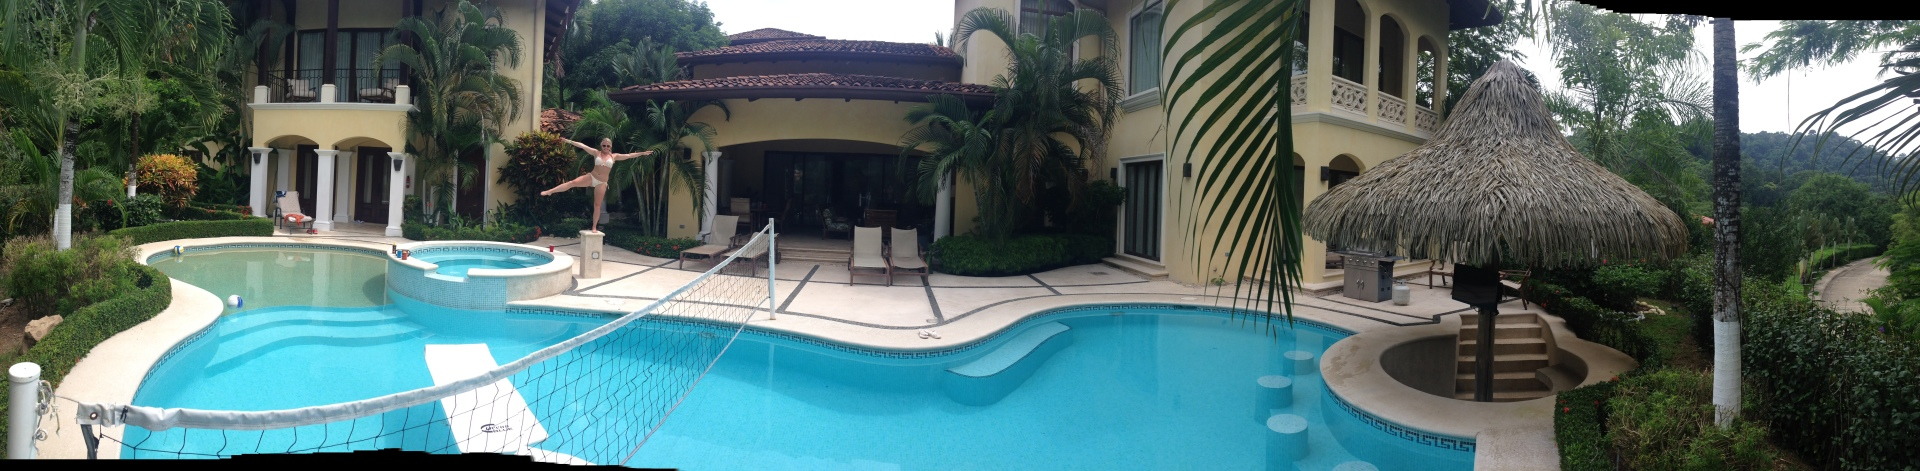 Our house with our very own swim up bar.